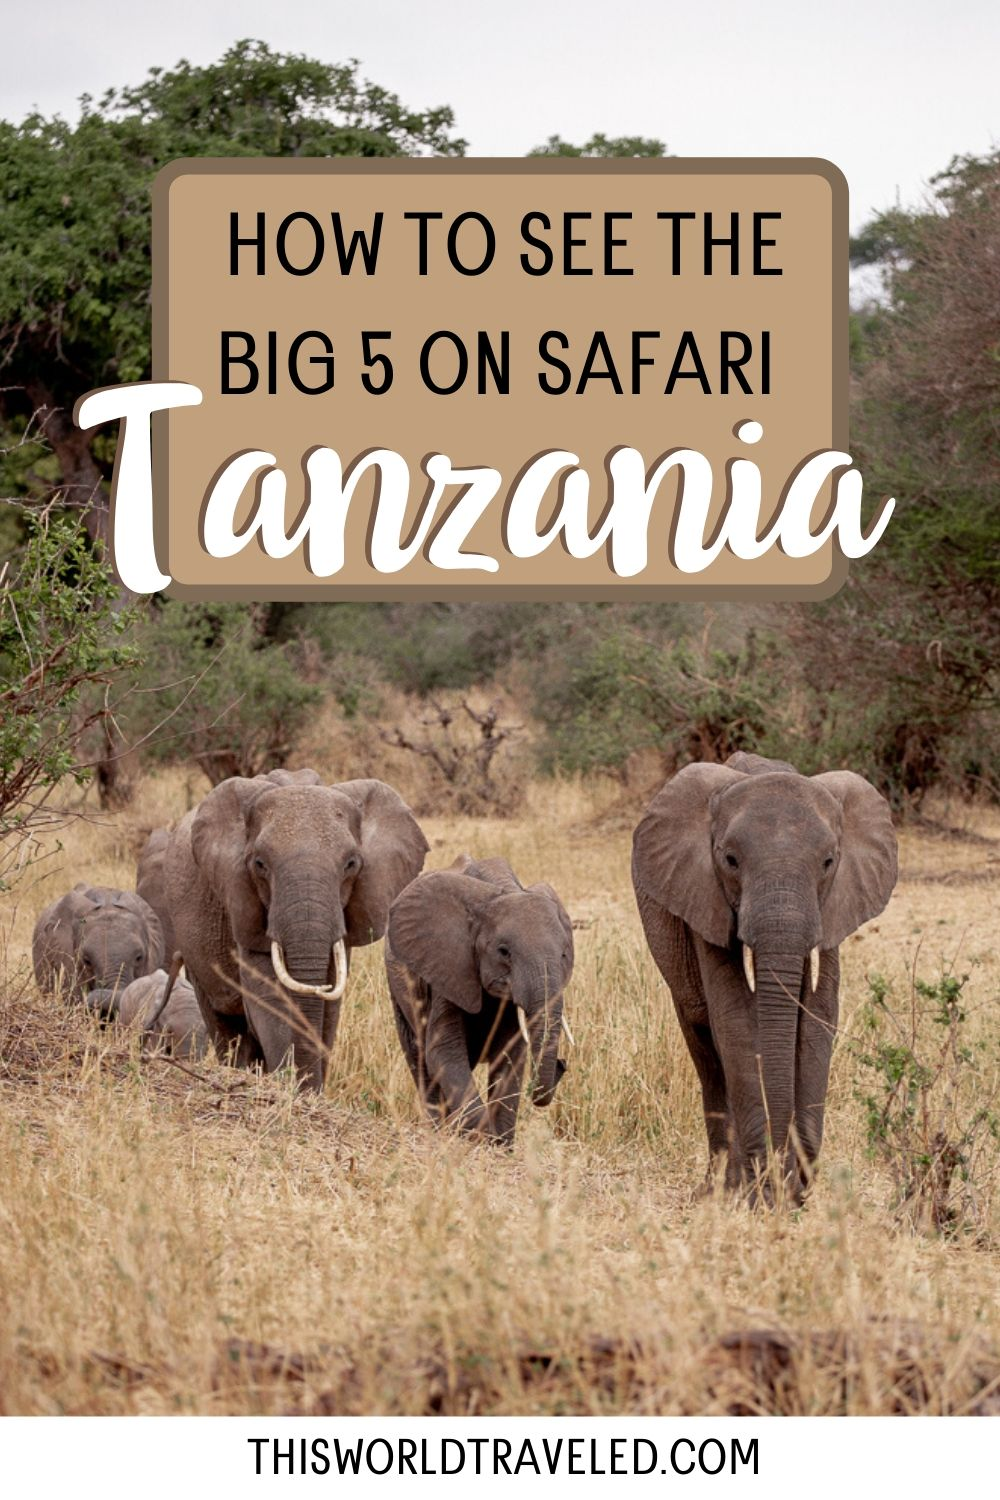 How to see the big 5 on safari in Tanzania with a picture of elephants